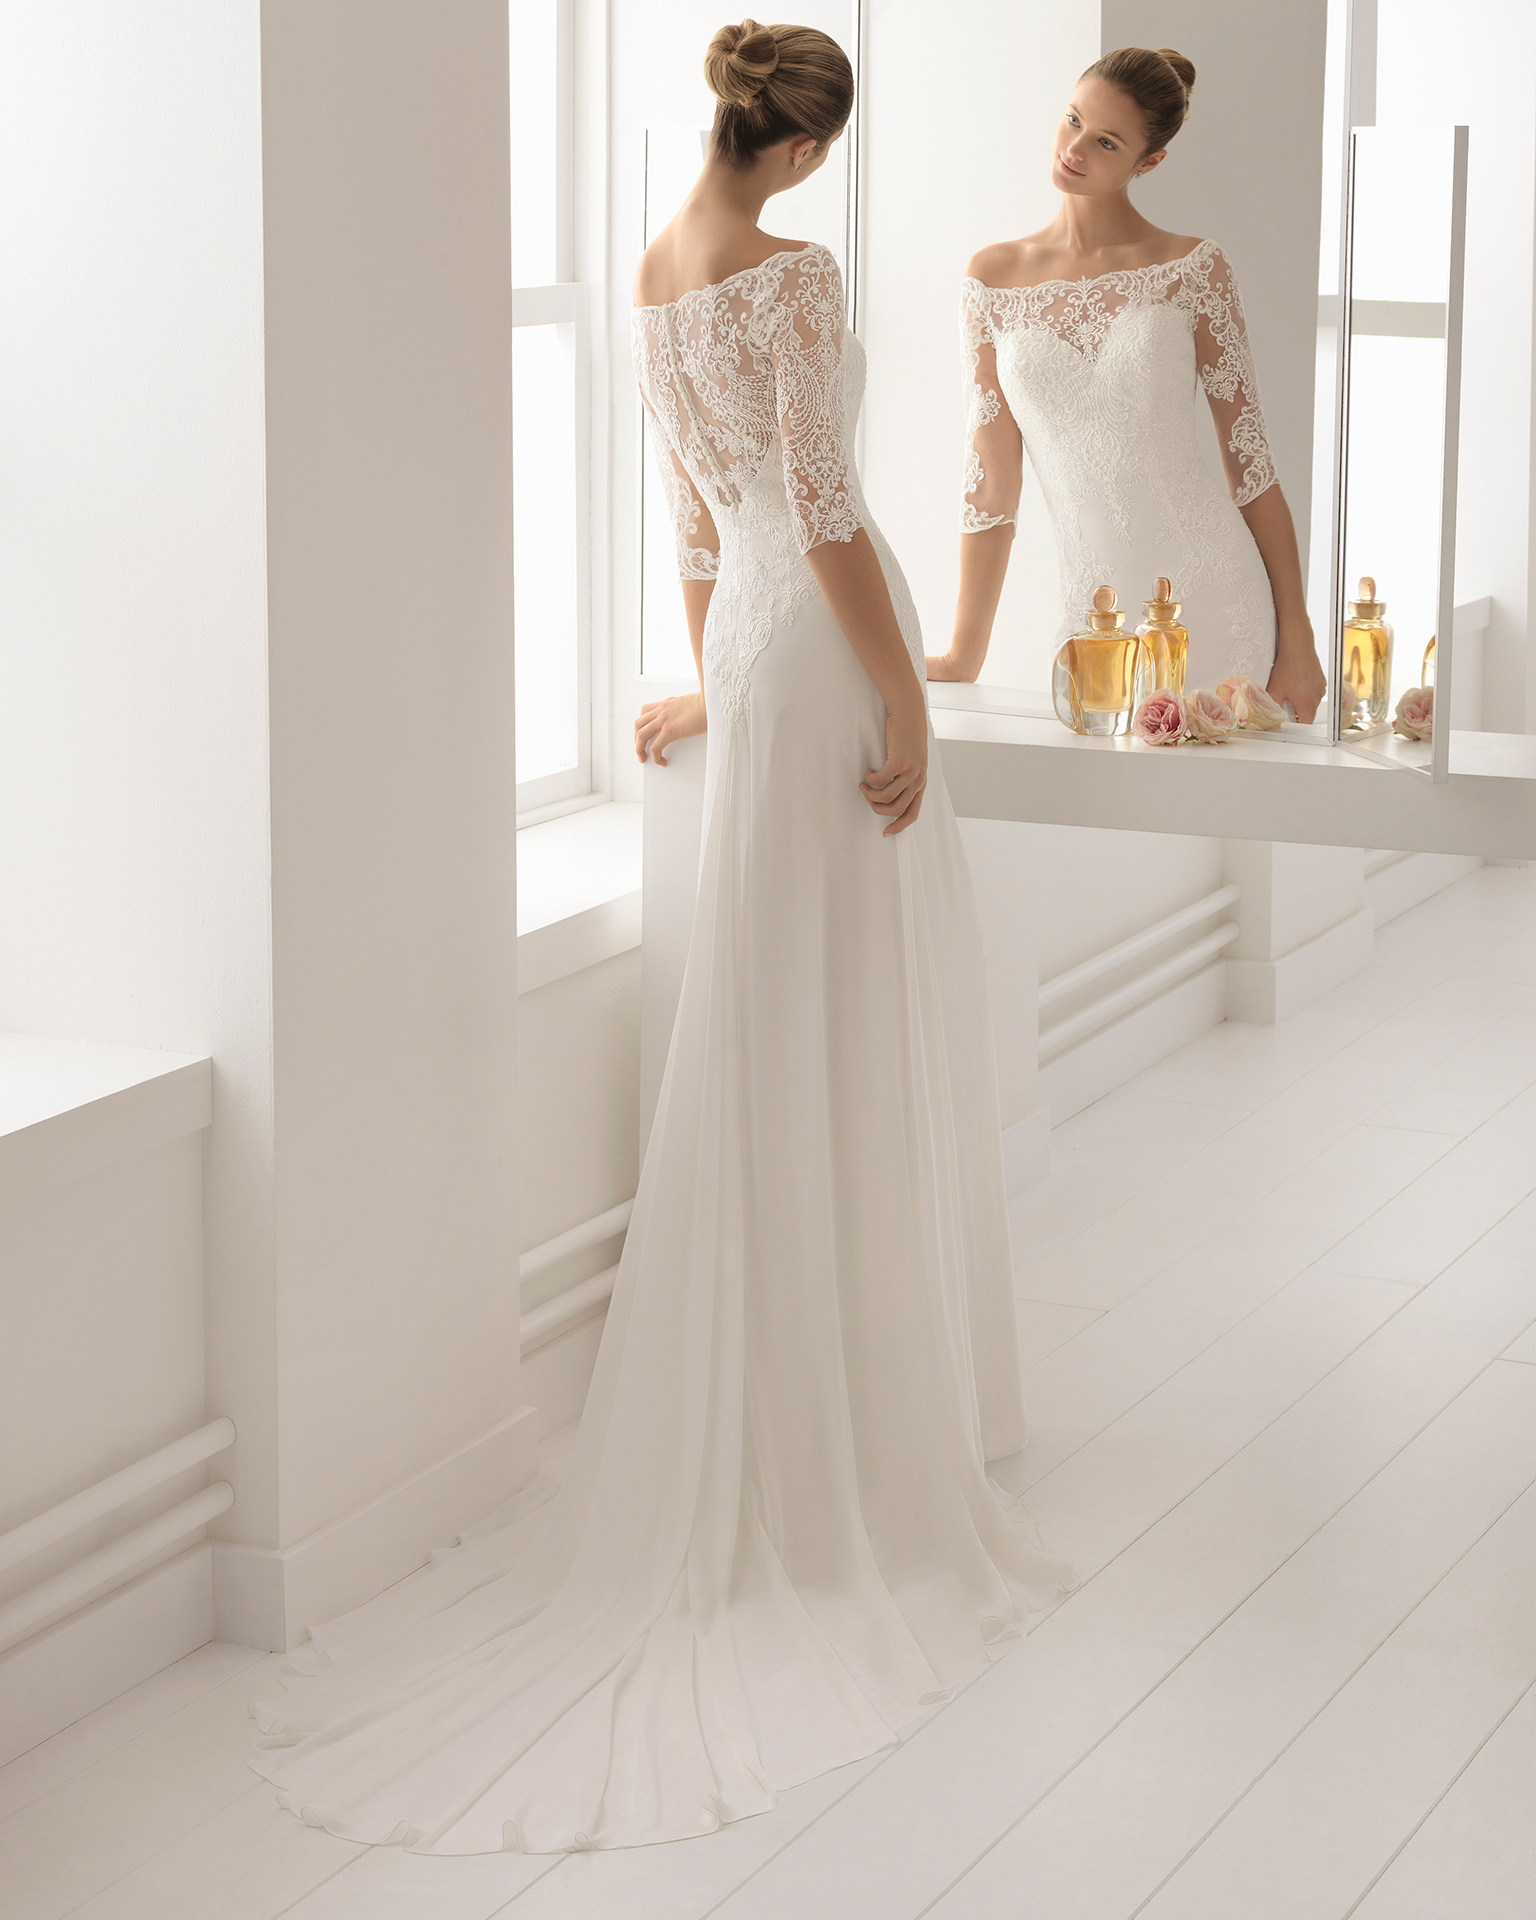 Classic-style beaded lace and chiffon wedding dress with three-quarter sleeves and sweetheart neckline.